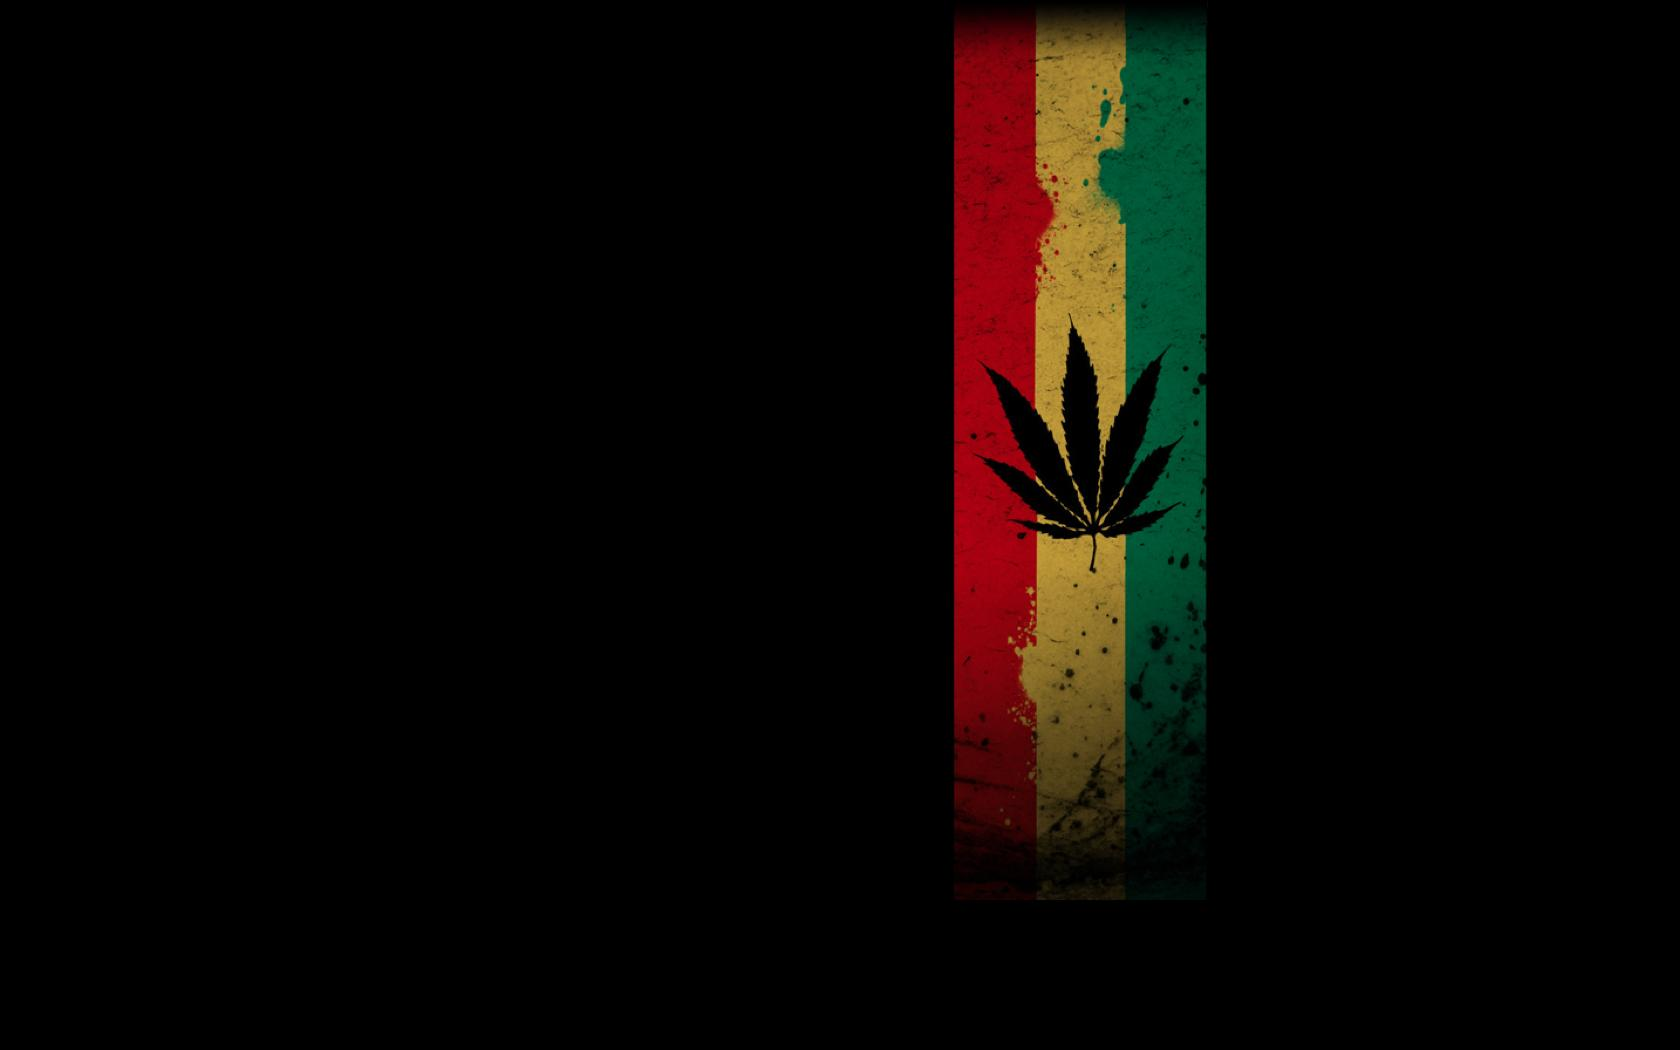 HD Wallpaper Rasta Picture Free Download | Ideas for the House | Pinterest